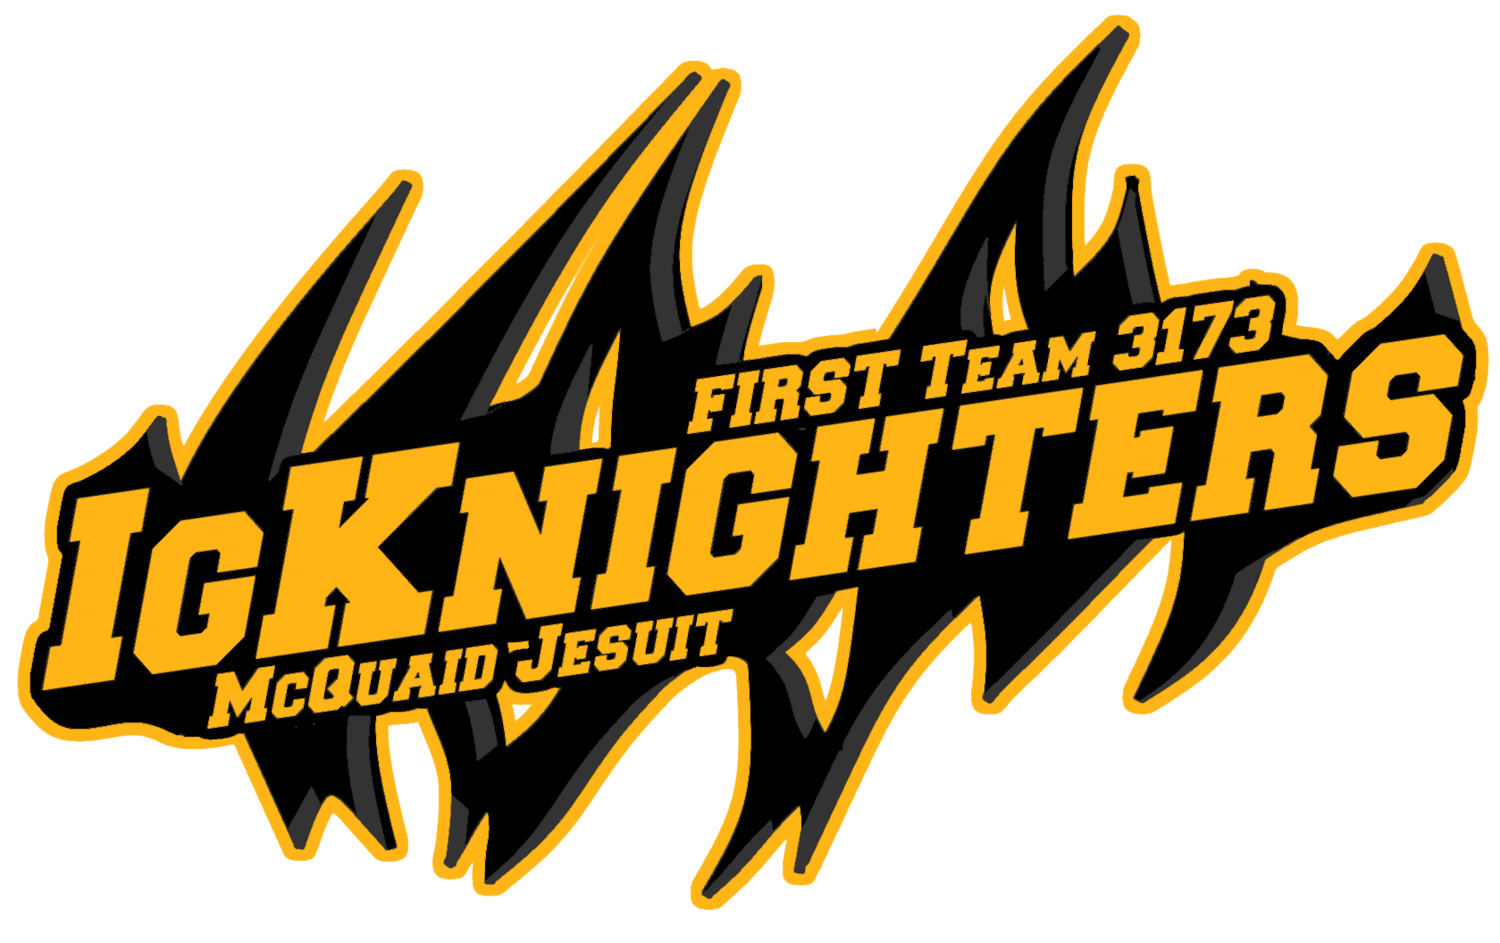 This year's team accomplished more than any other IgKnighters' team has before it. This is the 10th year of competing, a significant milestone for a FIRST Robotics team.